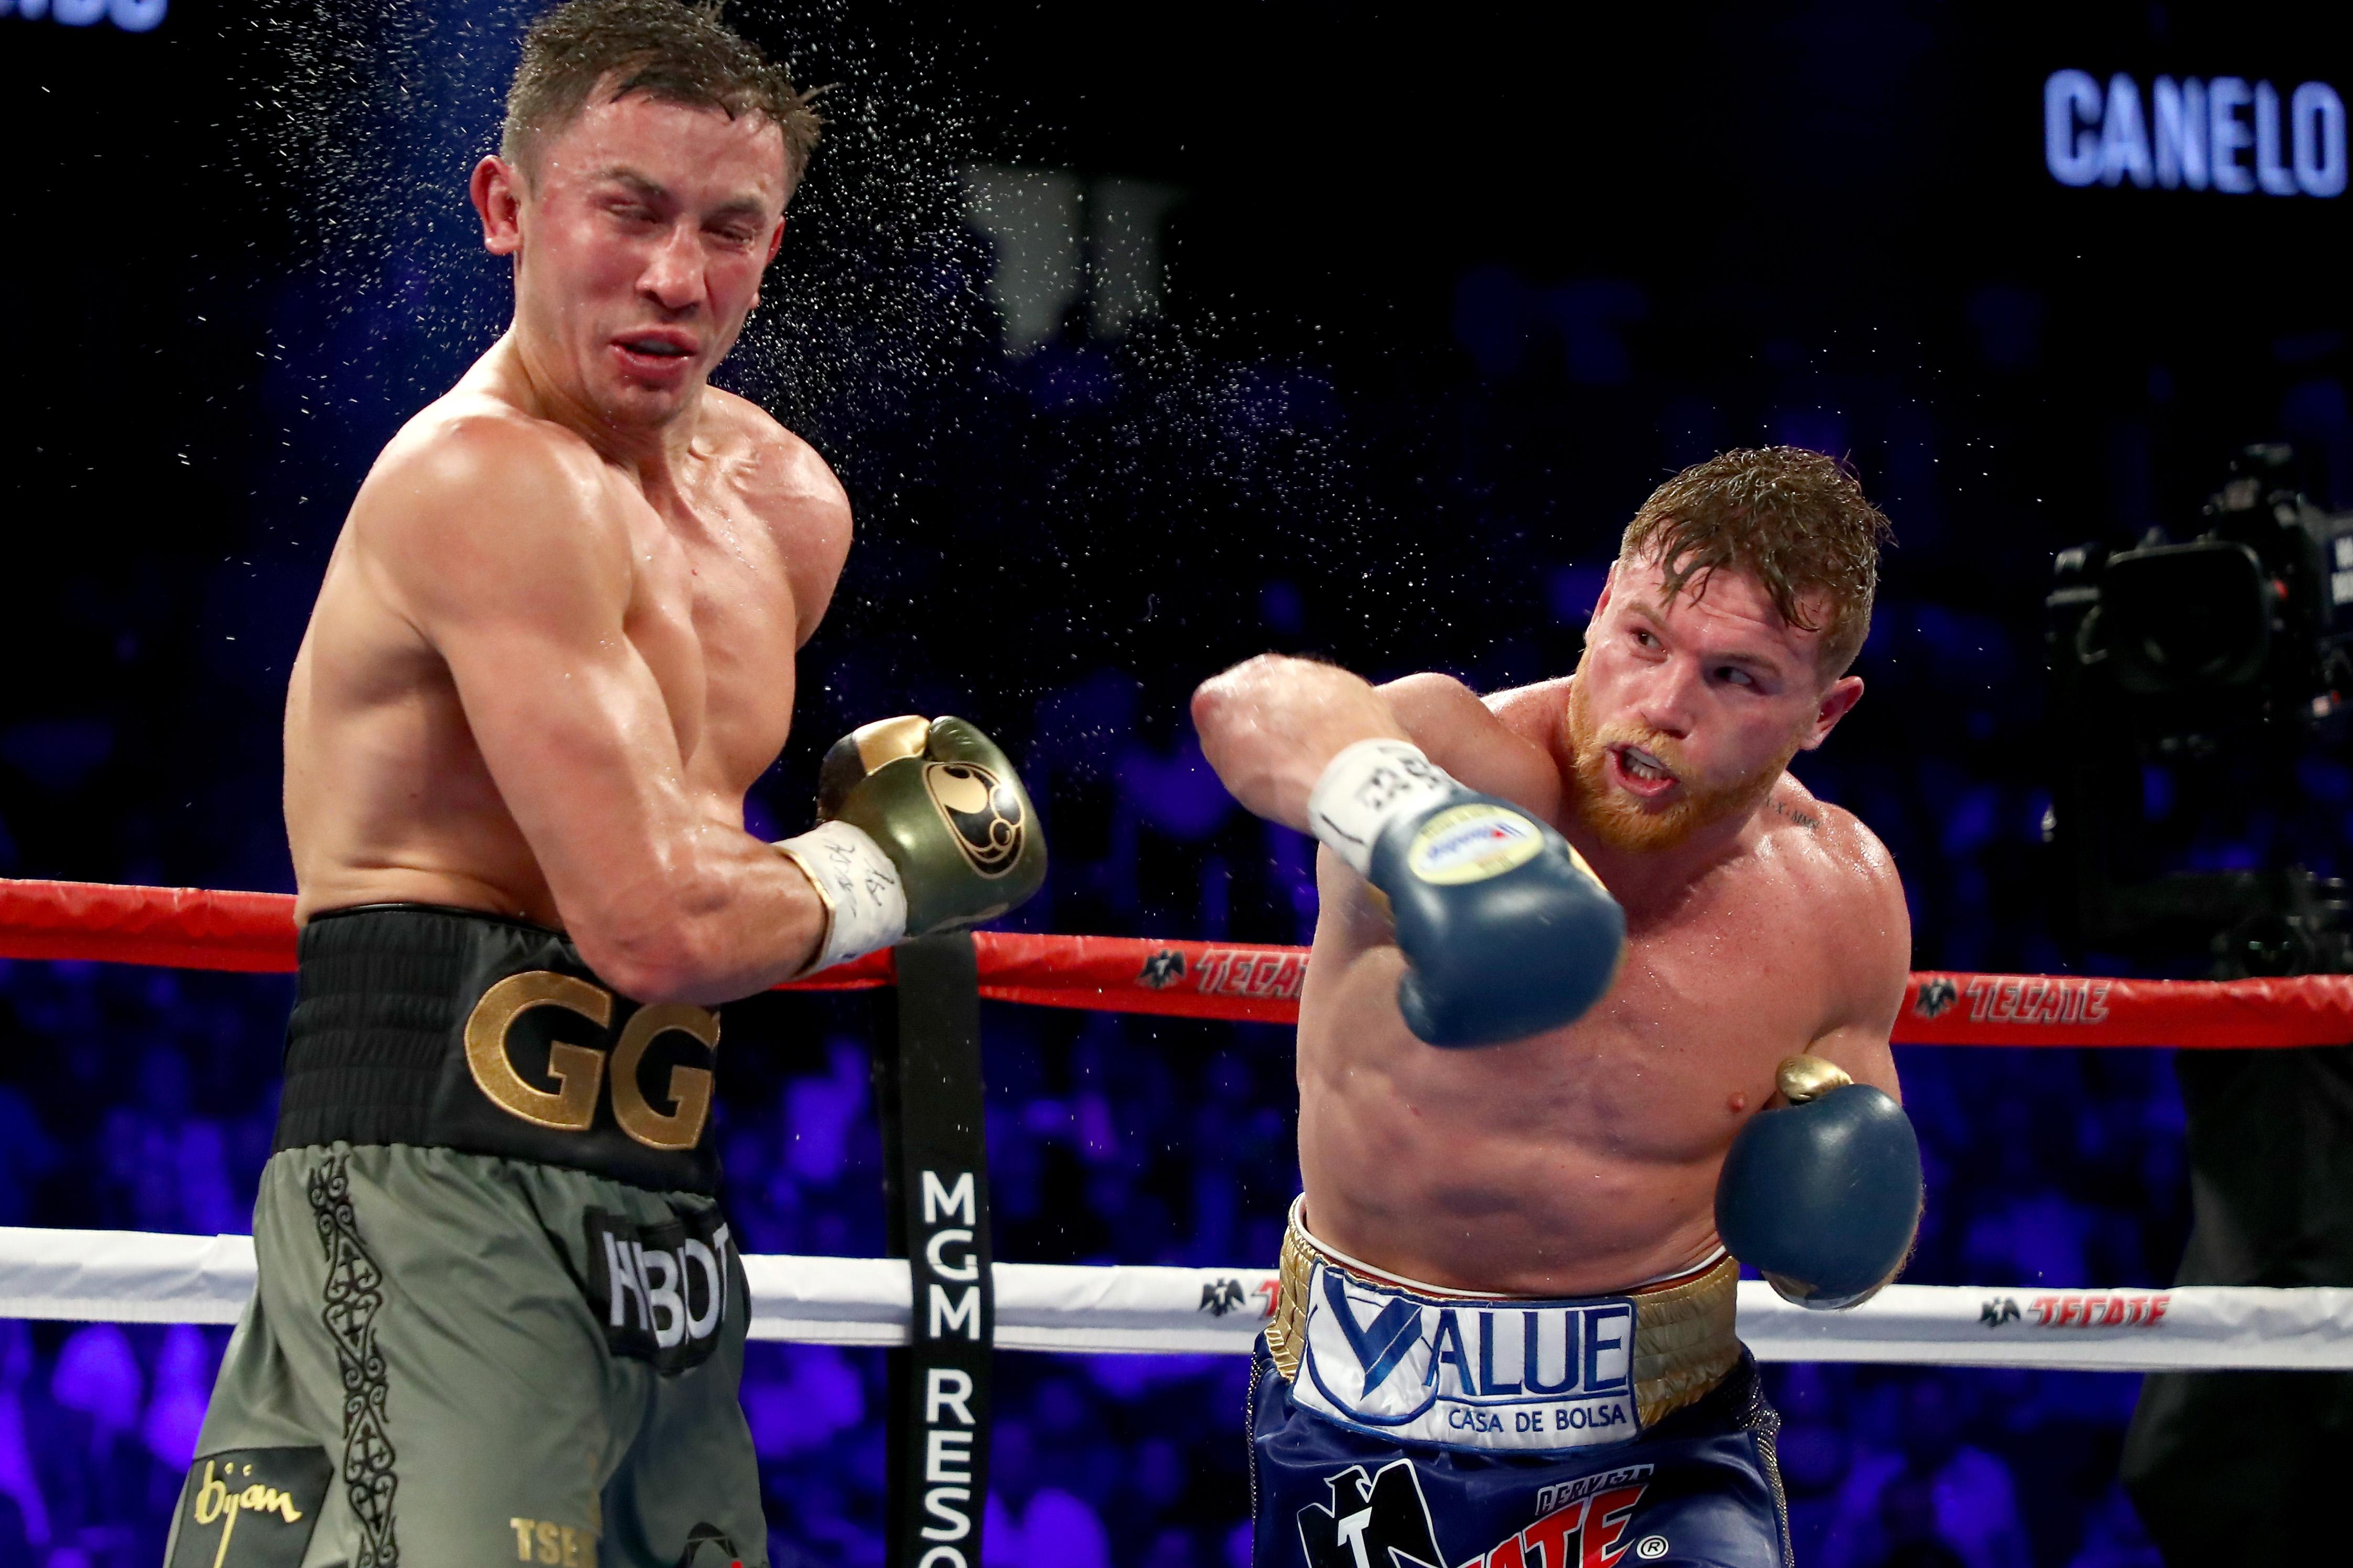 Saul Alvarez lands a punch on Gennady Golovkin in the first fight